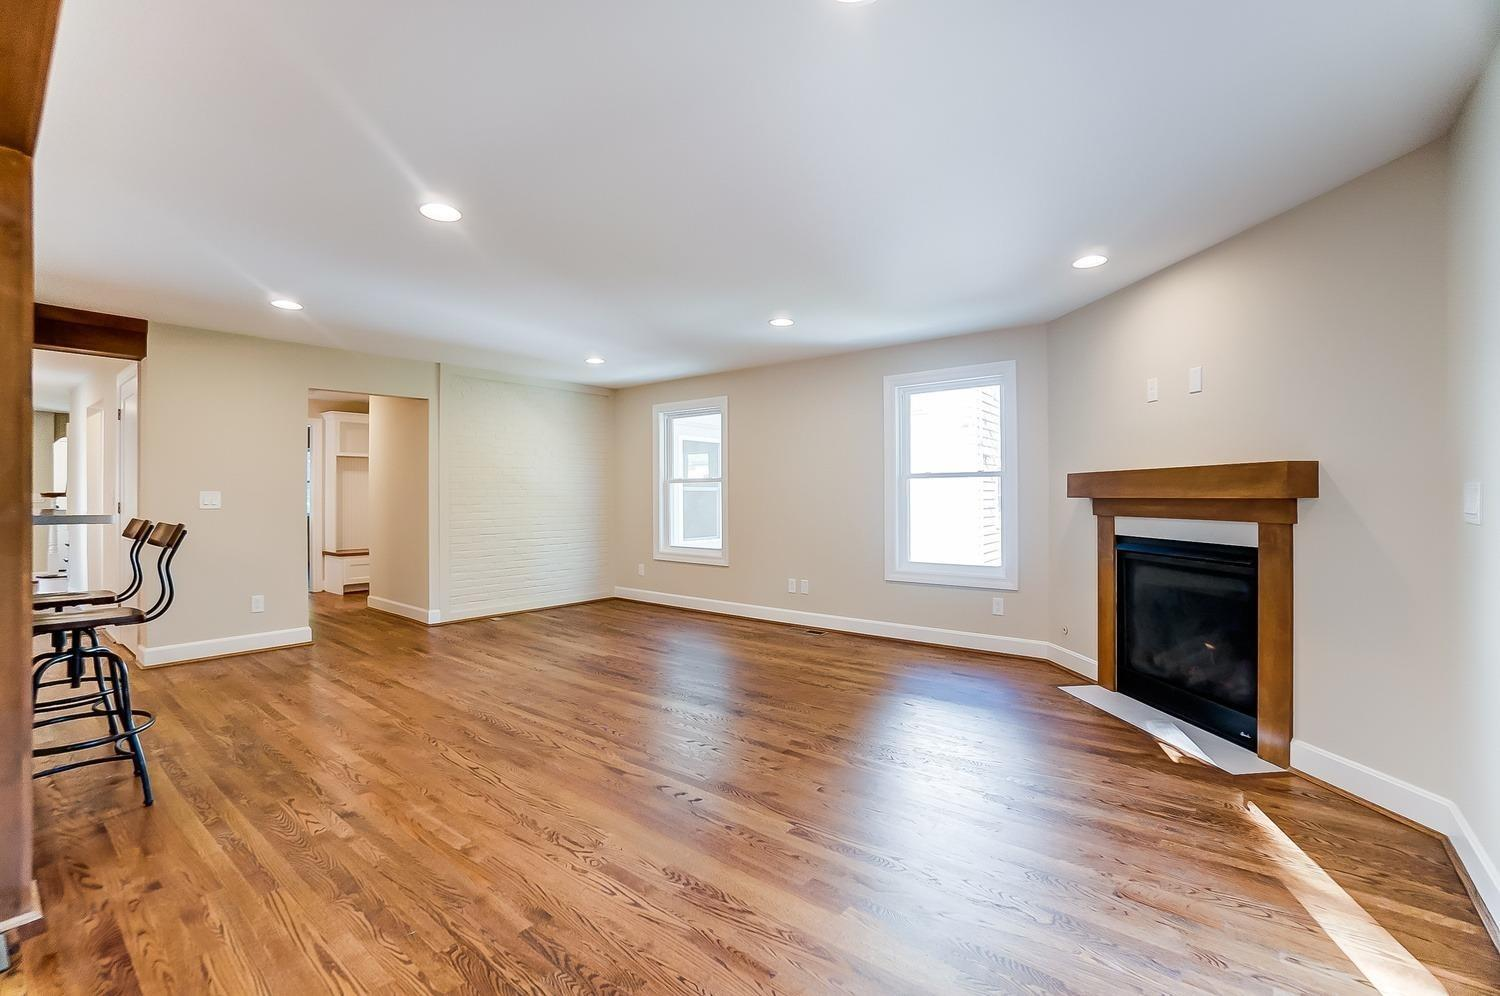 1st floor, family room, alternate view. Brick wall visible and walkway to mudroom visible.